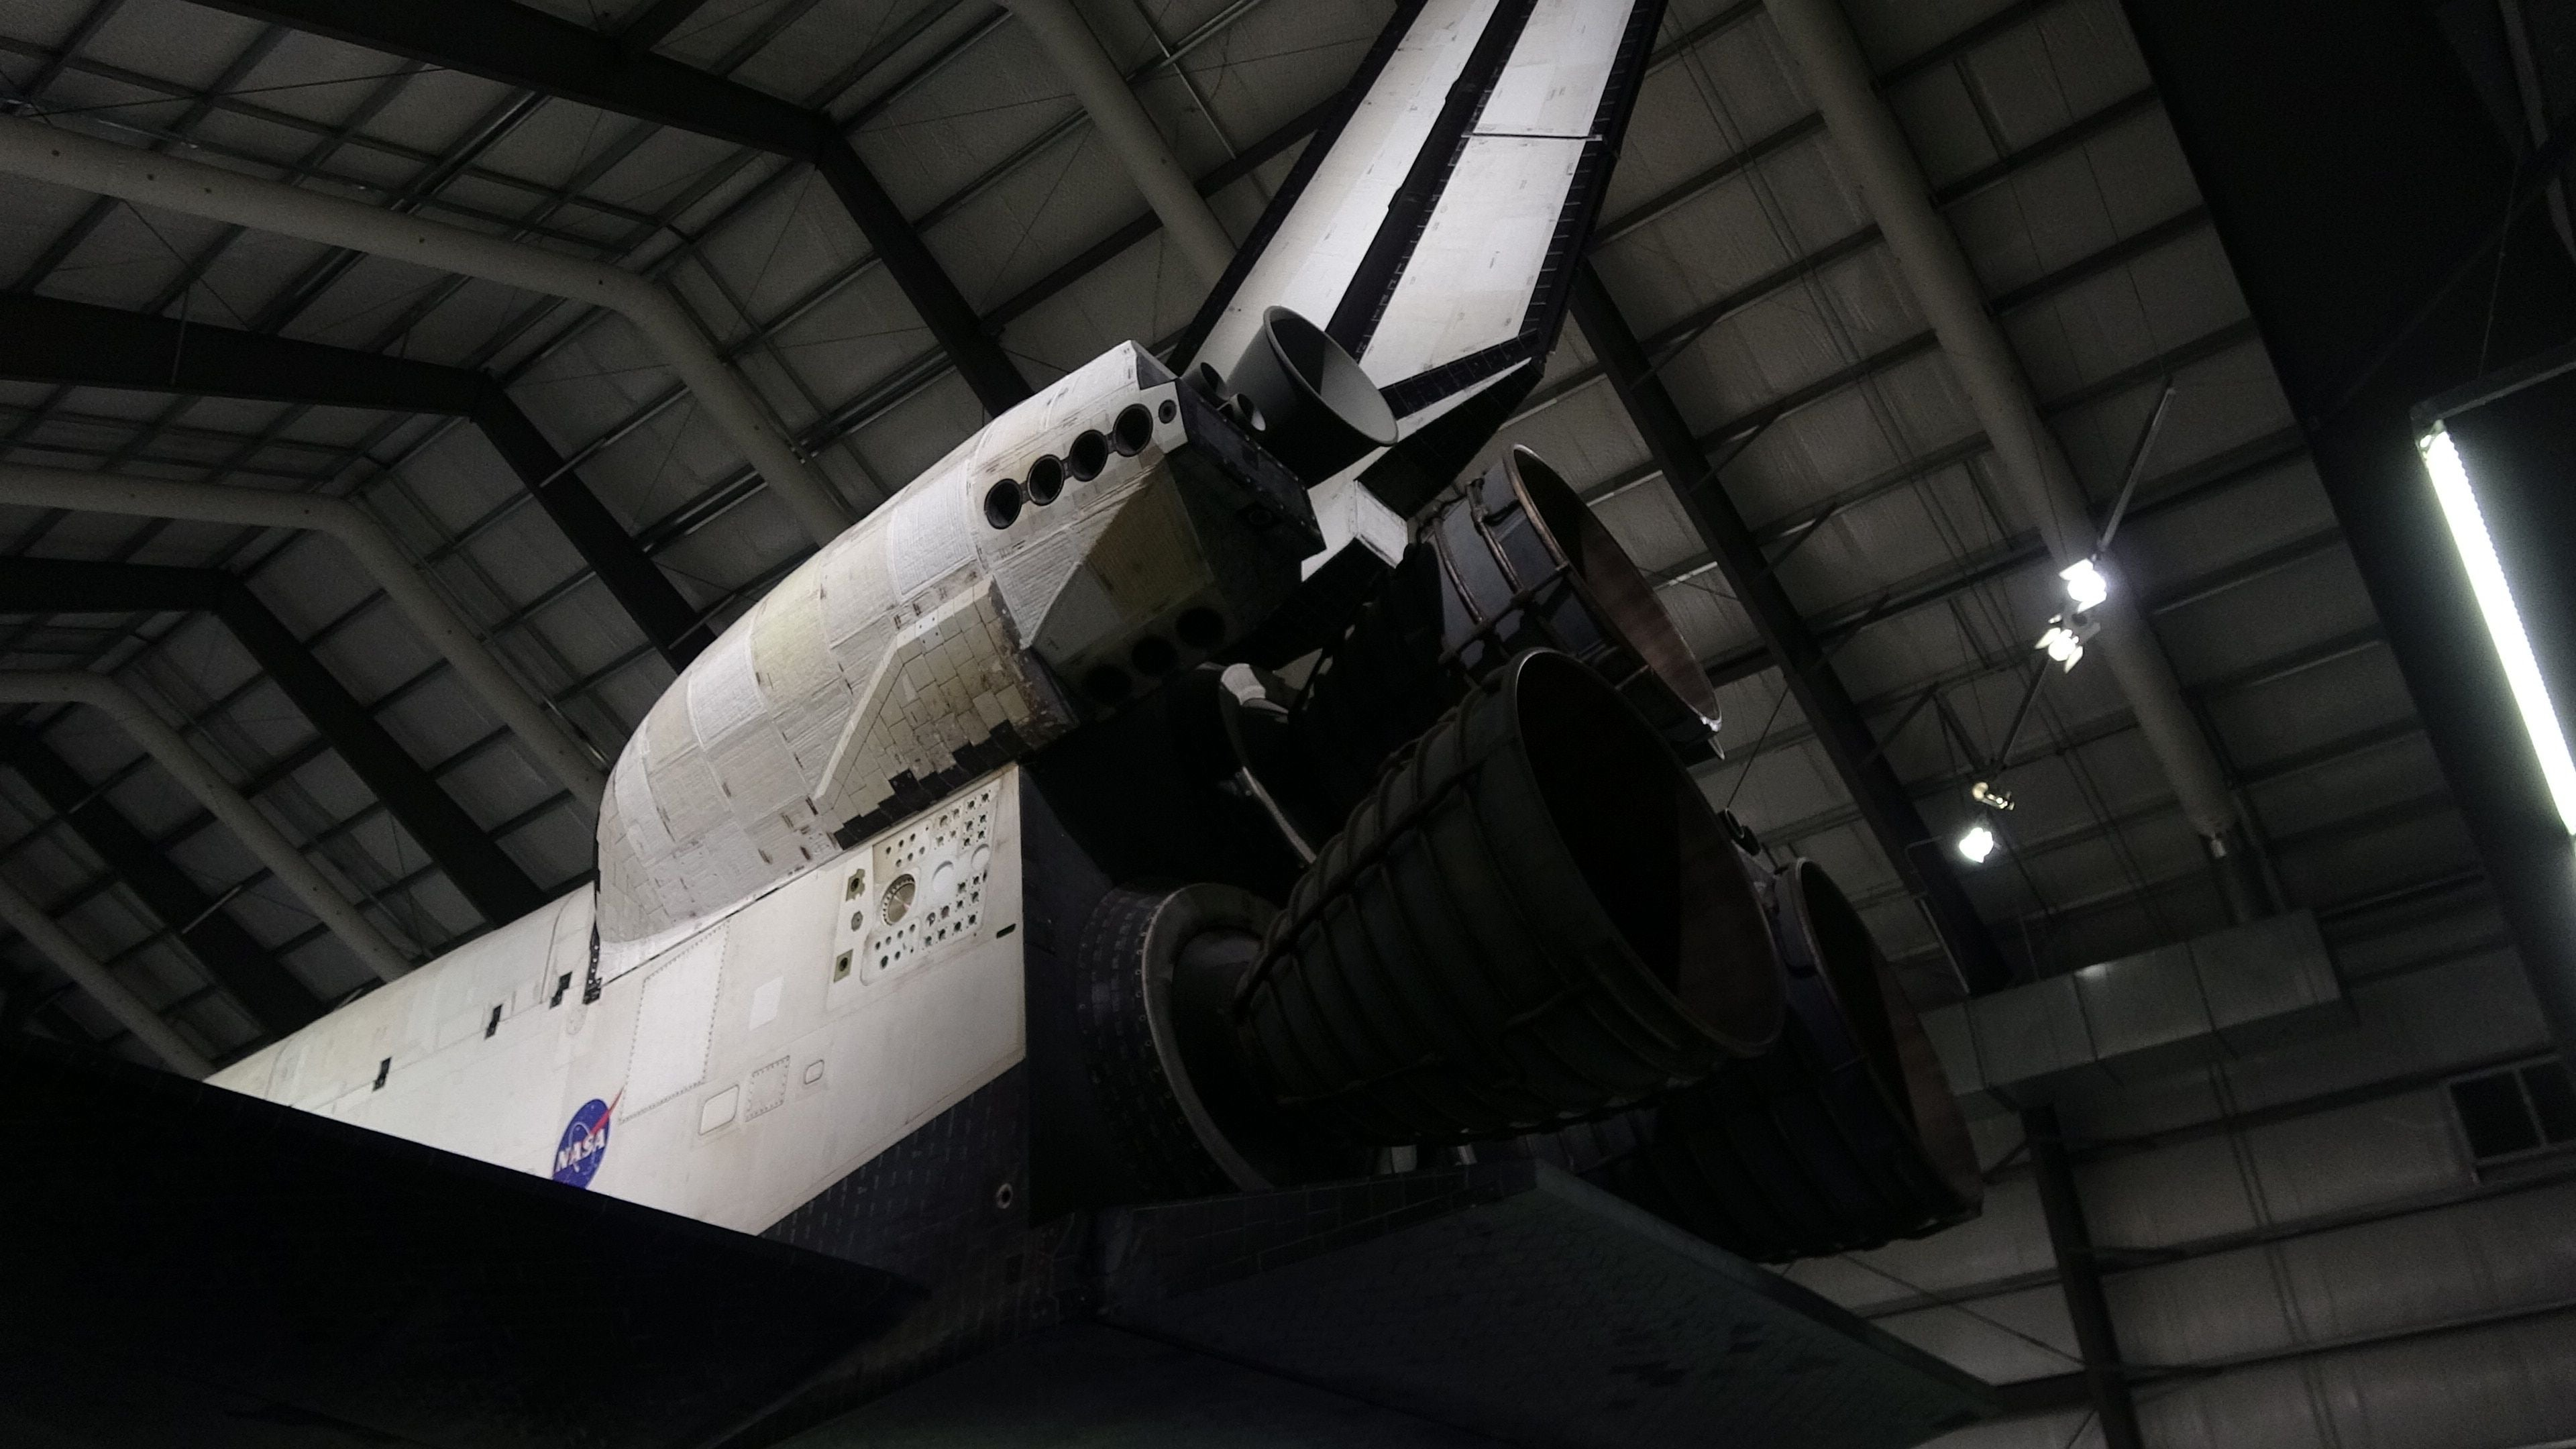 Airplane in Space Shuttle Endeavour